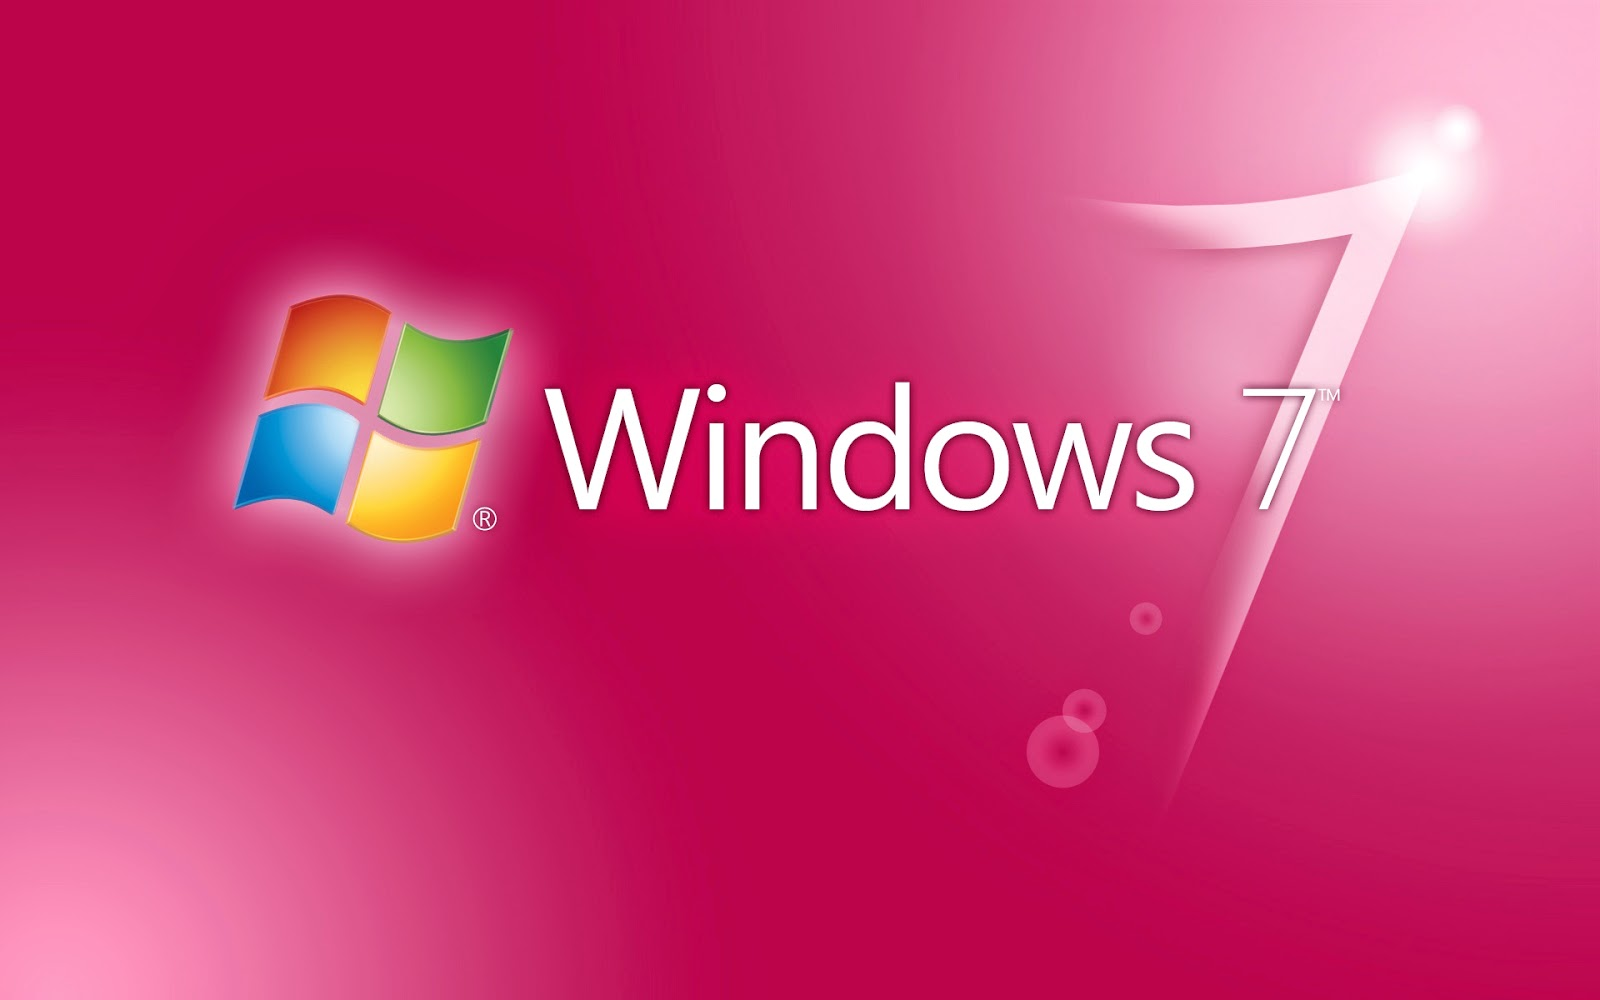 Rosa Windows 7 desktopmotiv